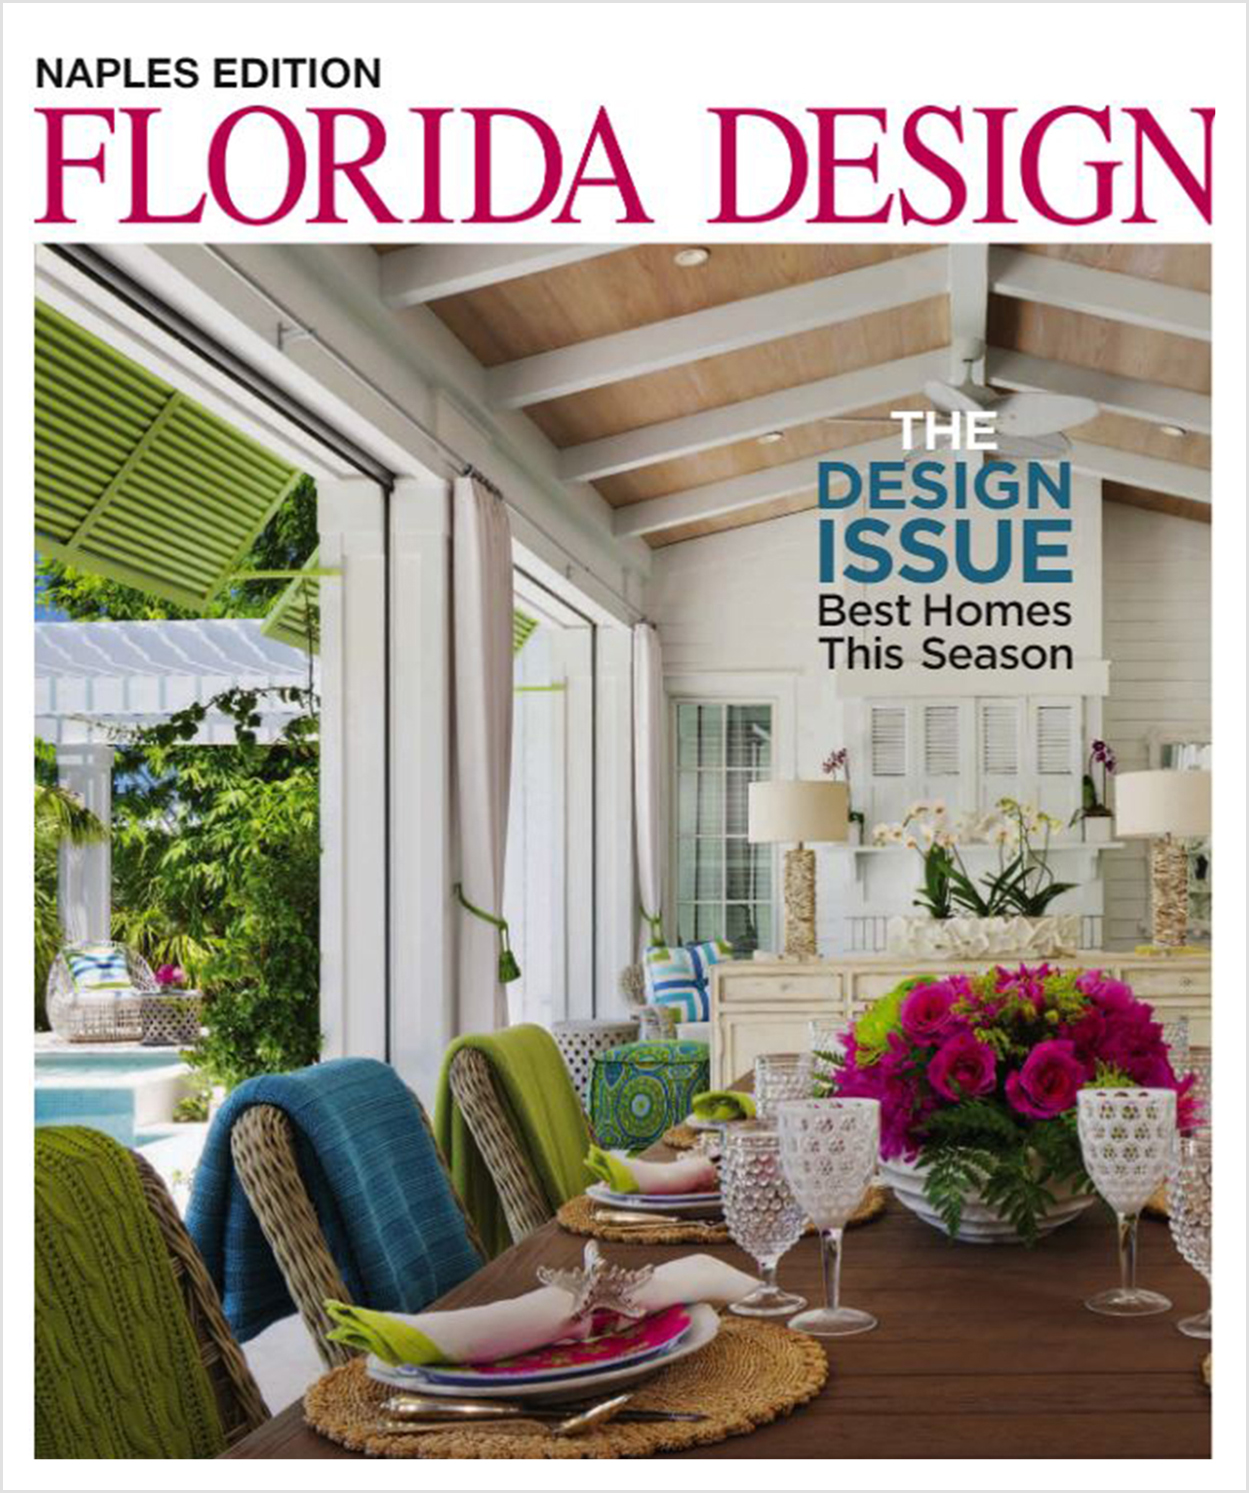 Florida Design Naples edition, volume 3 #1_062819.jpg